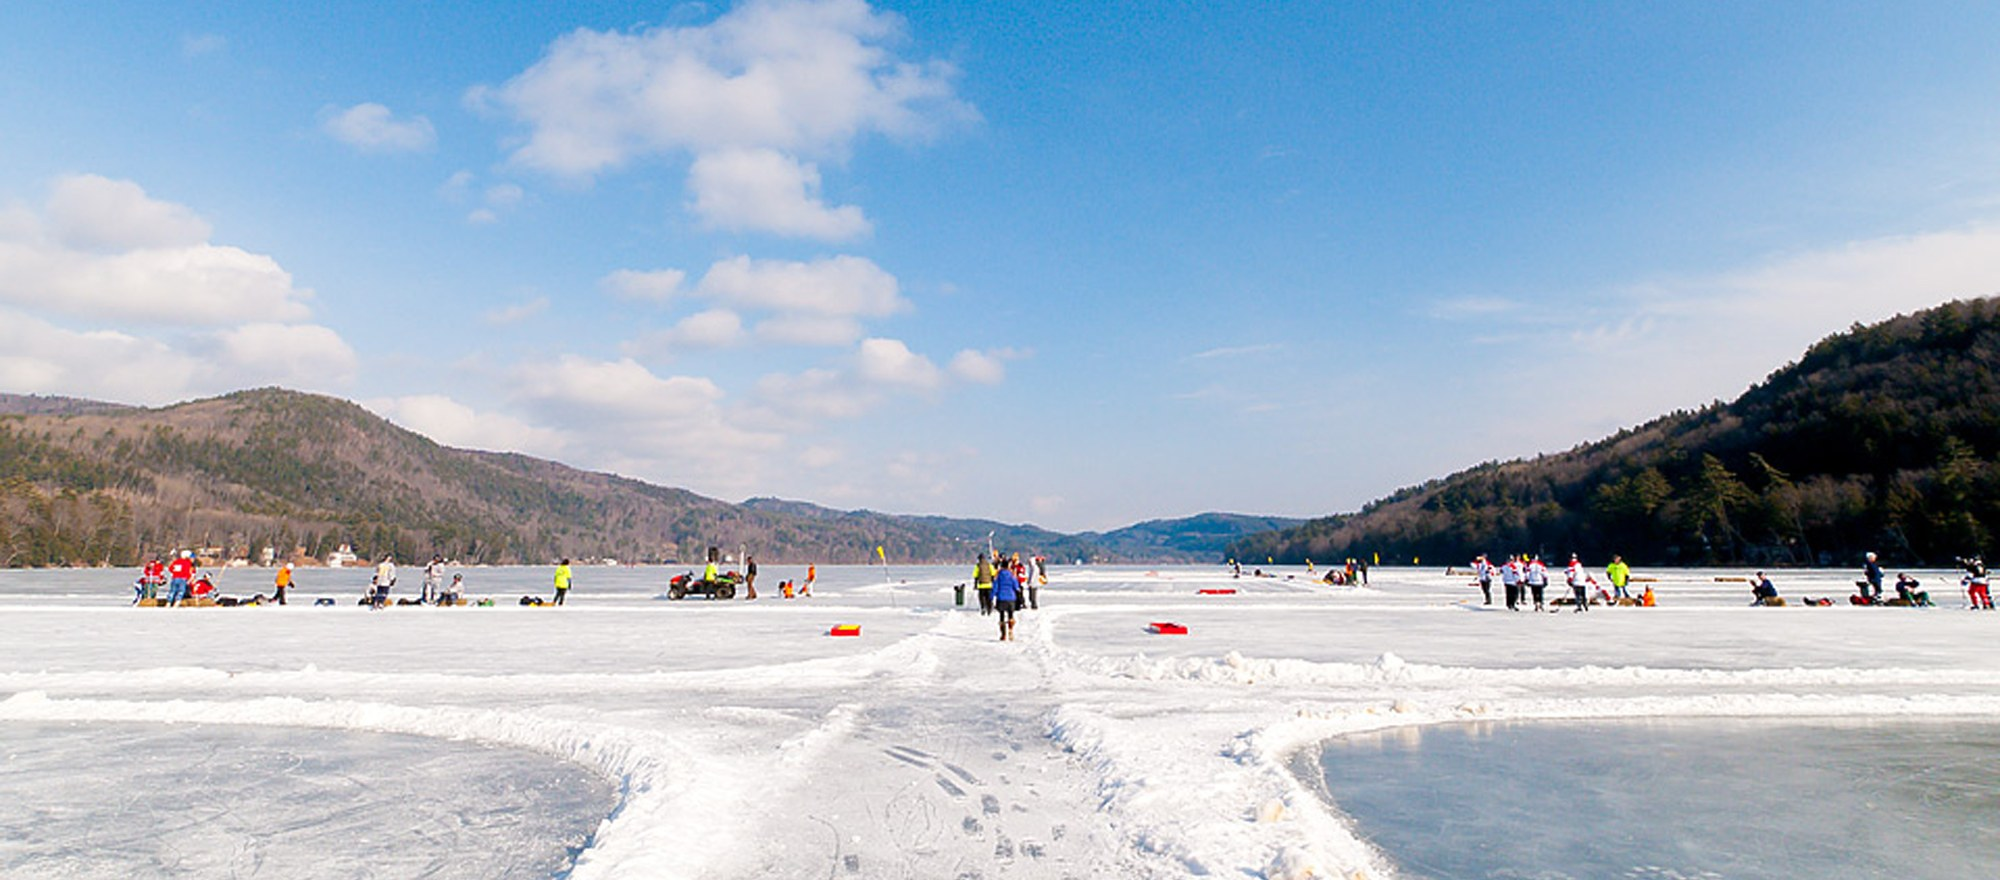 Hockey rinks on frozen Lake Morey